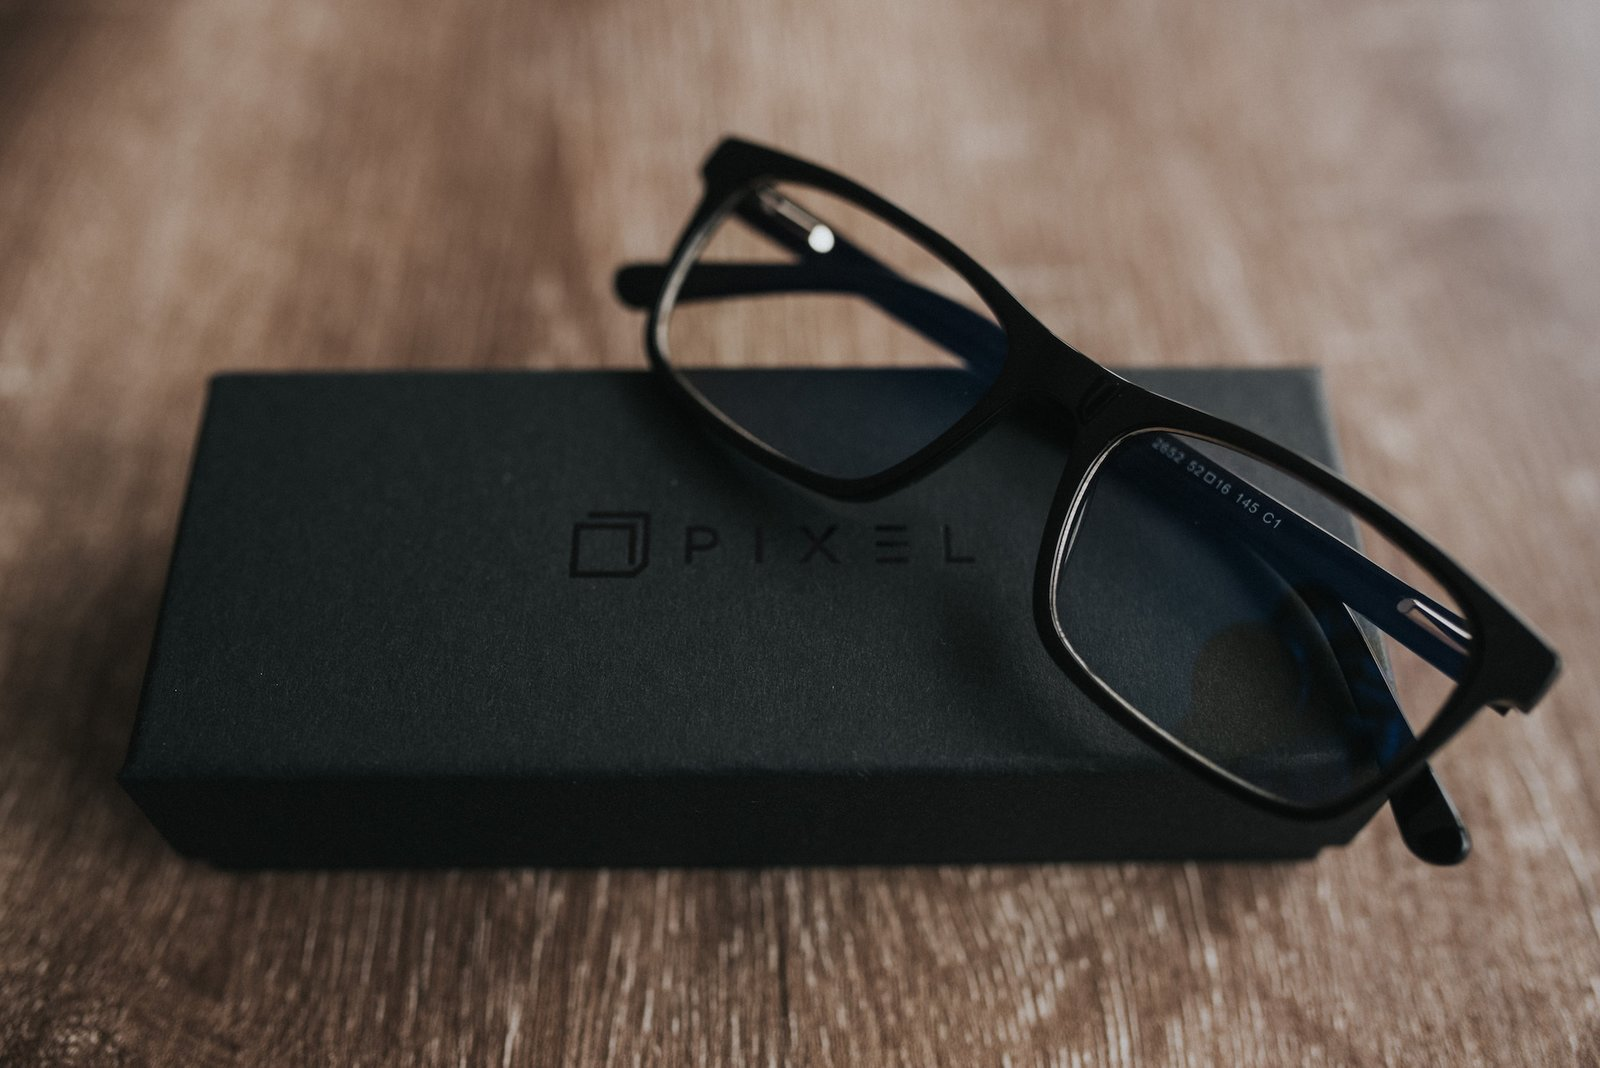 Pixel and Felix Gray offer a vast range of lightweight, unisex glasses. Whether you're looking for a classic frame or are seeking a more modern twist, you're sure to find something of interest.